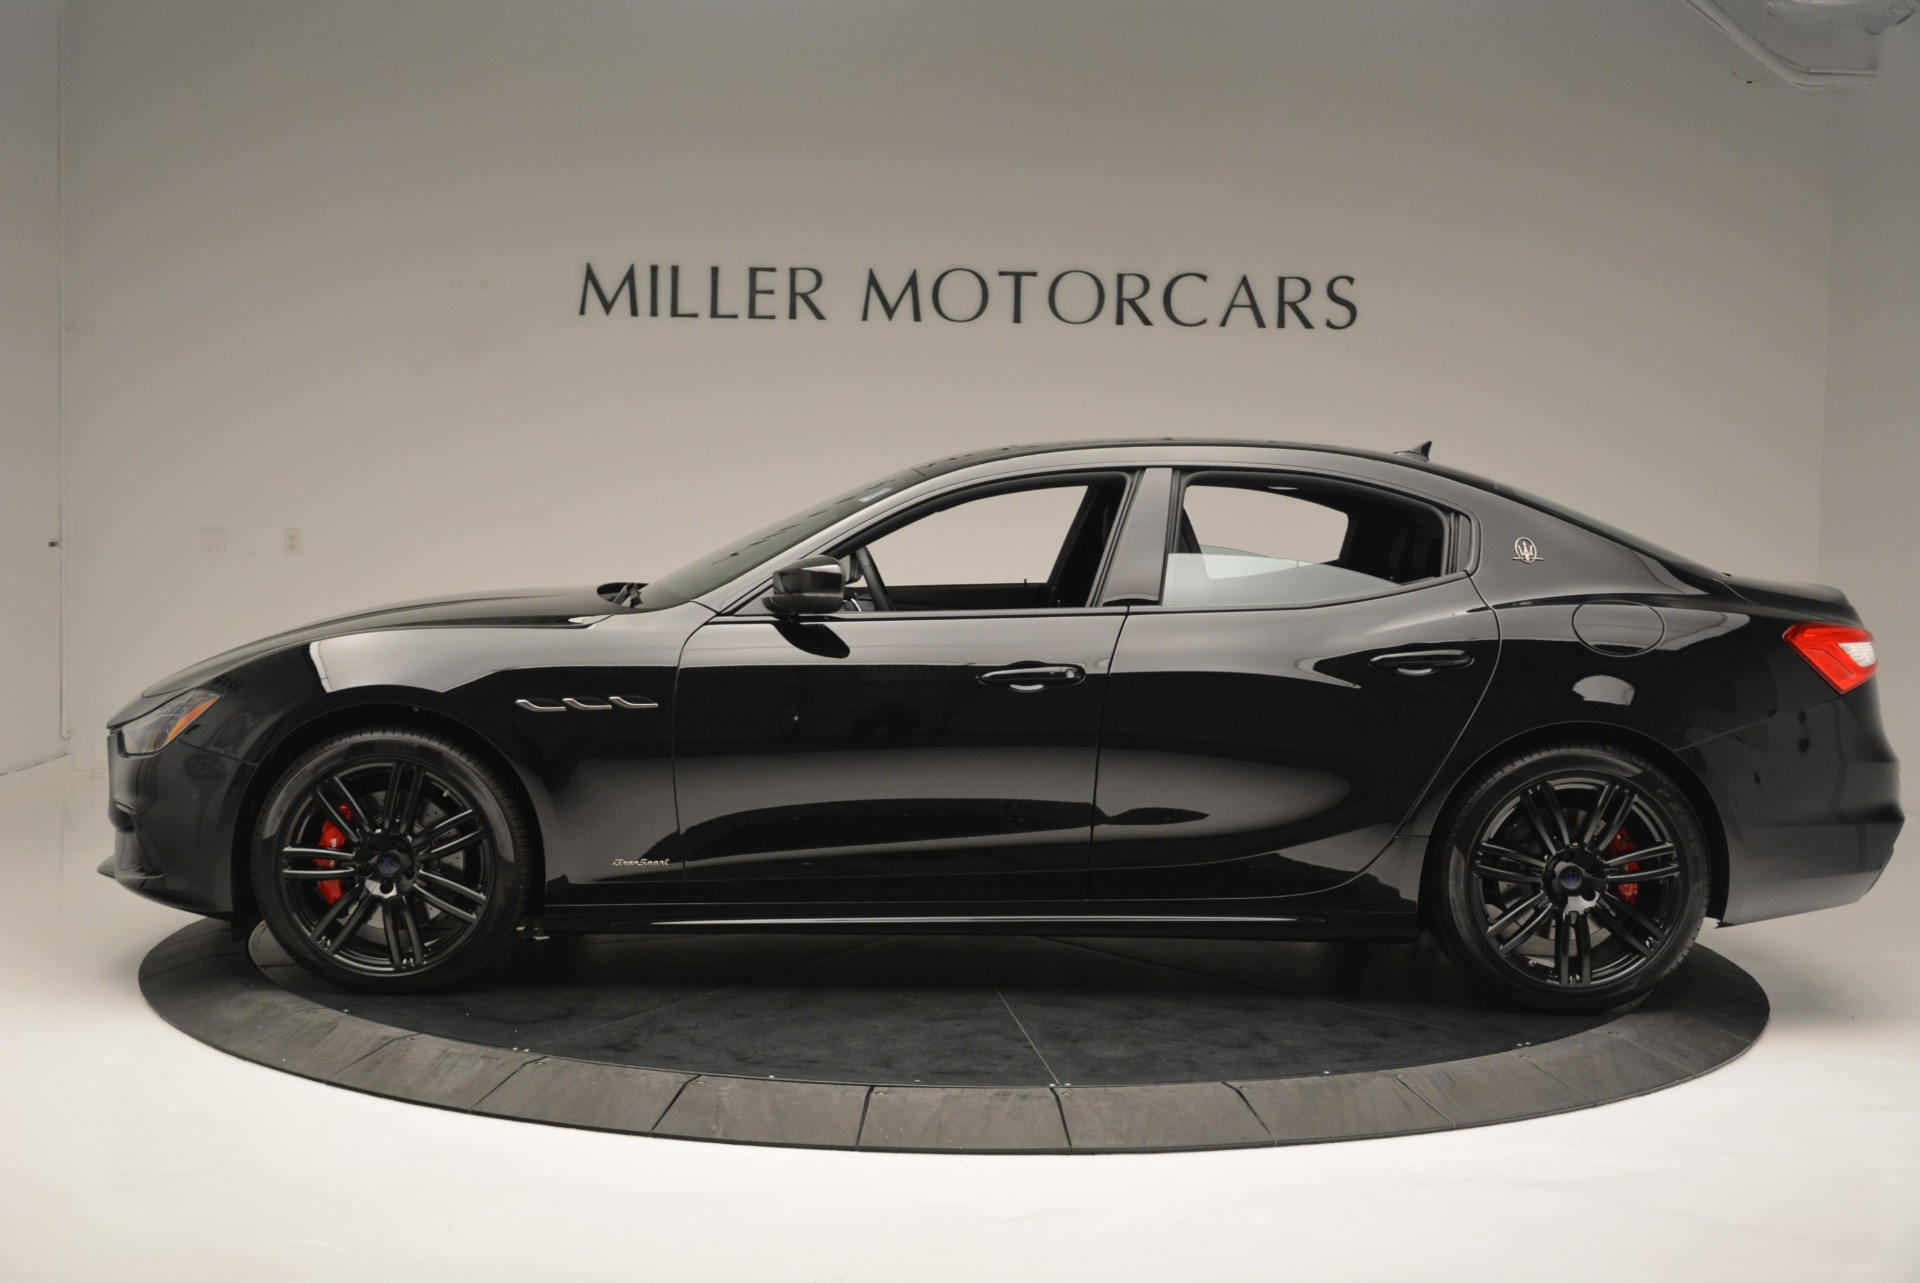 New 2018 Maserati Ghibli SQ4 GranSport Nerissimo For Sale In Westport, CT 2366_p3